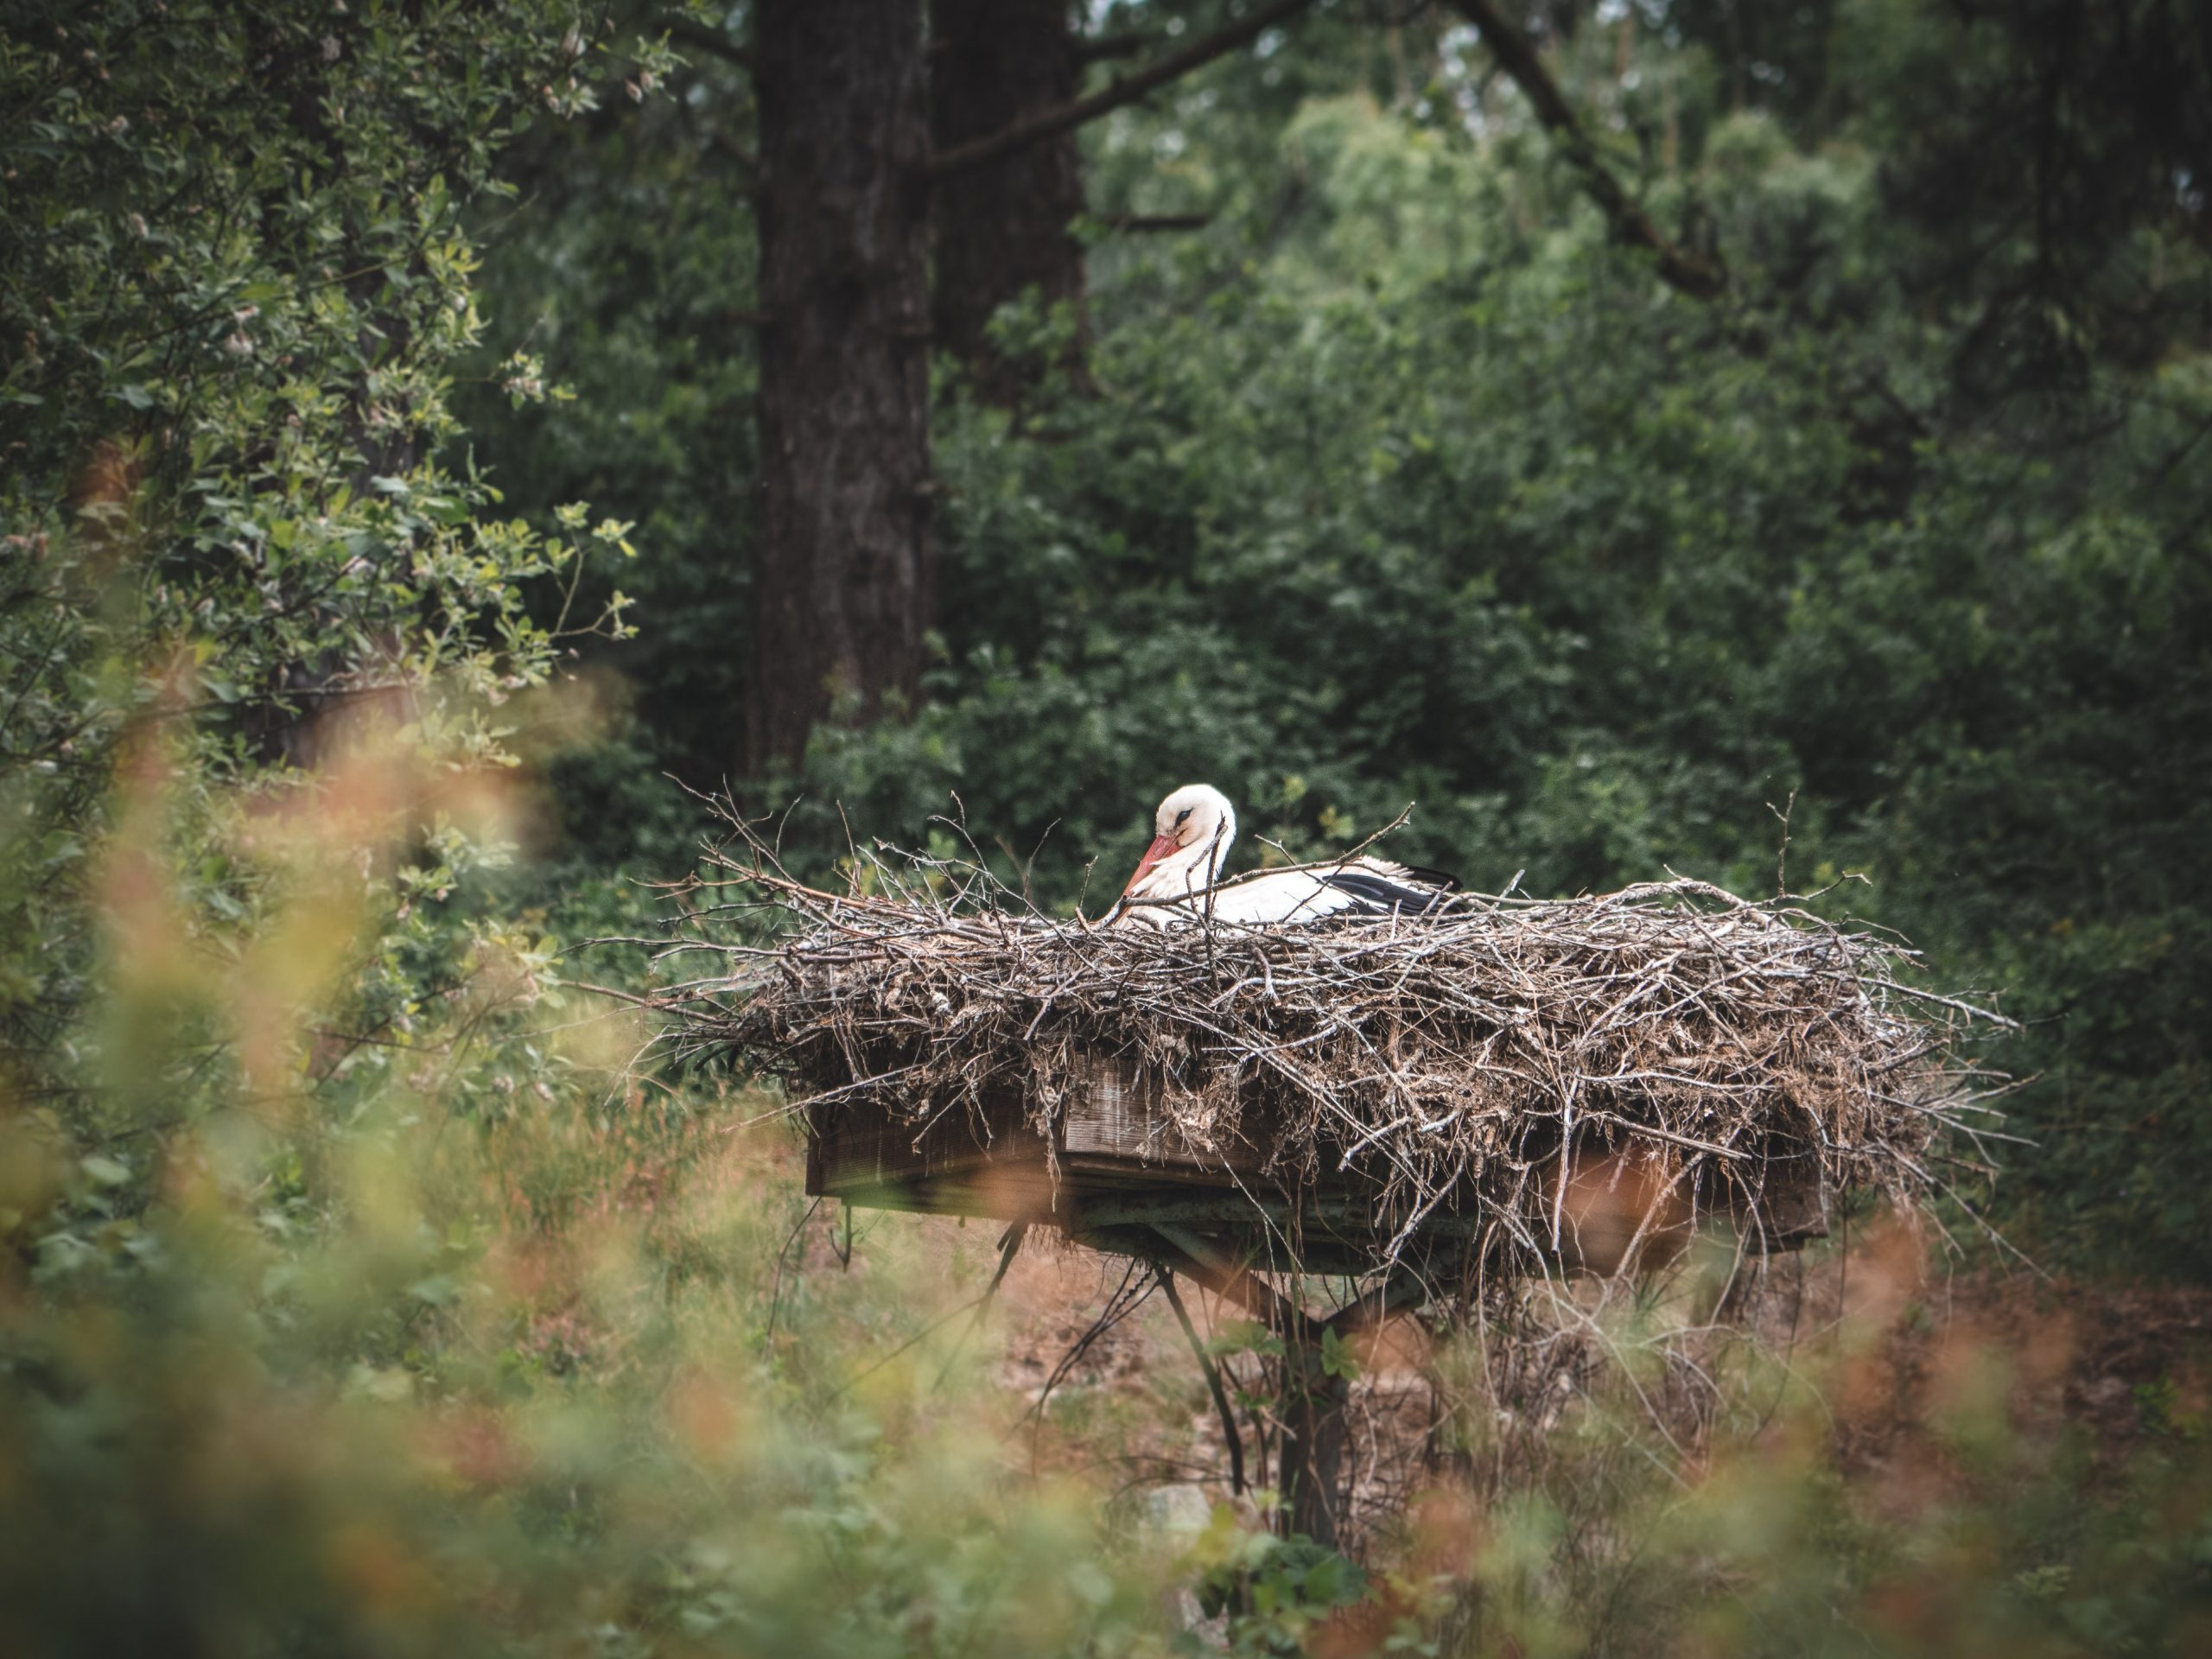 somme marquenterre cigogne scaled - Les globe blogueurs - blog voyage nature